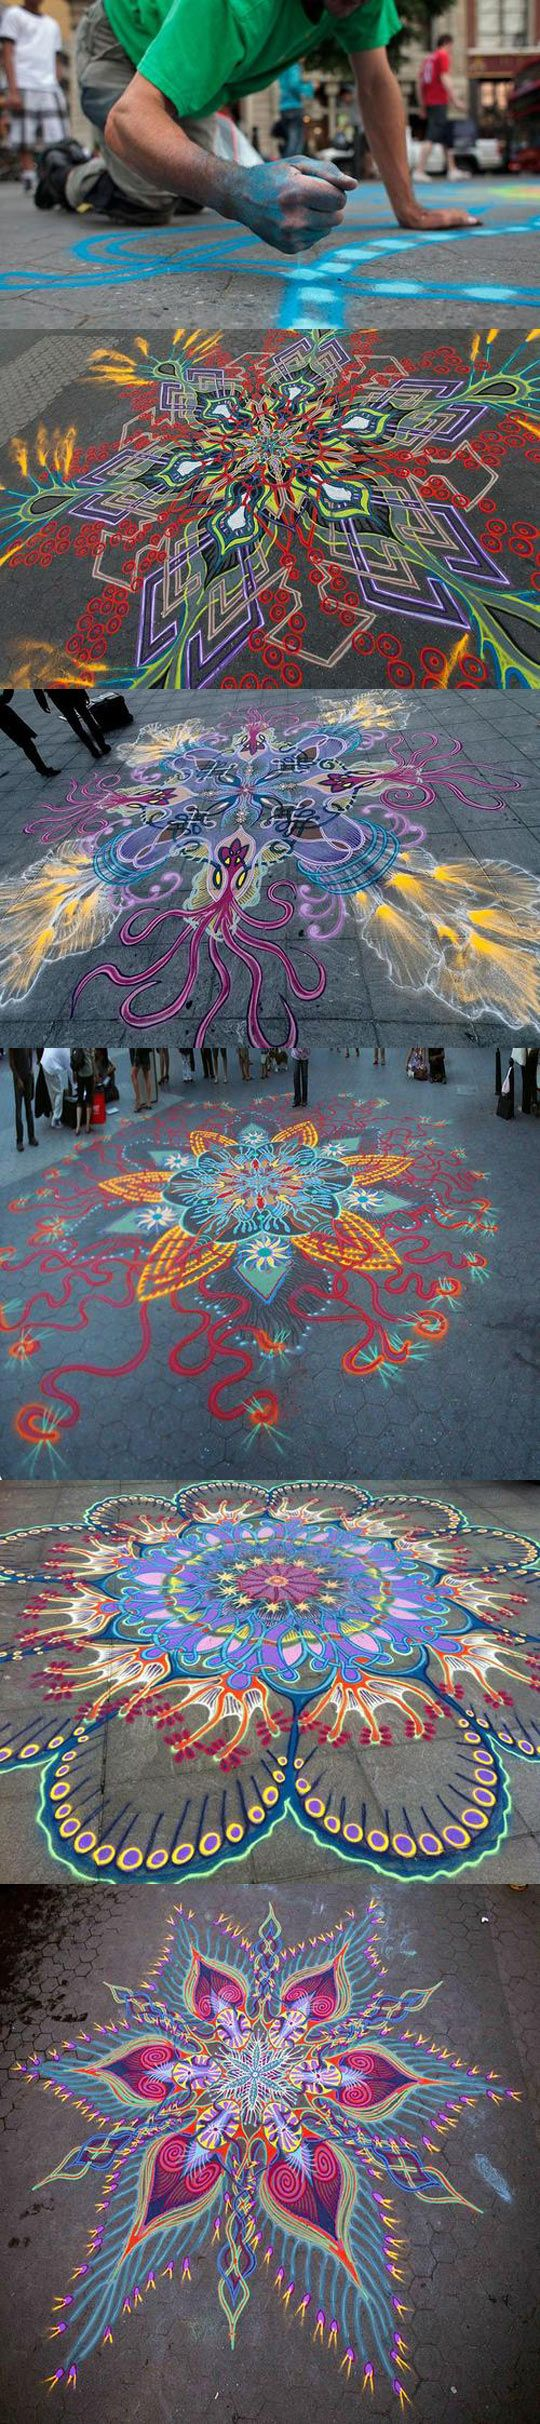 @MizGrafx Sand paintings created by hand